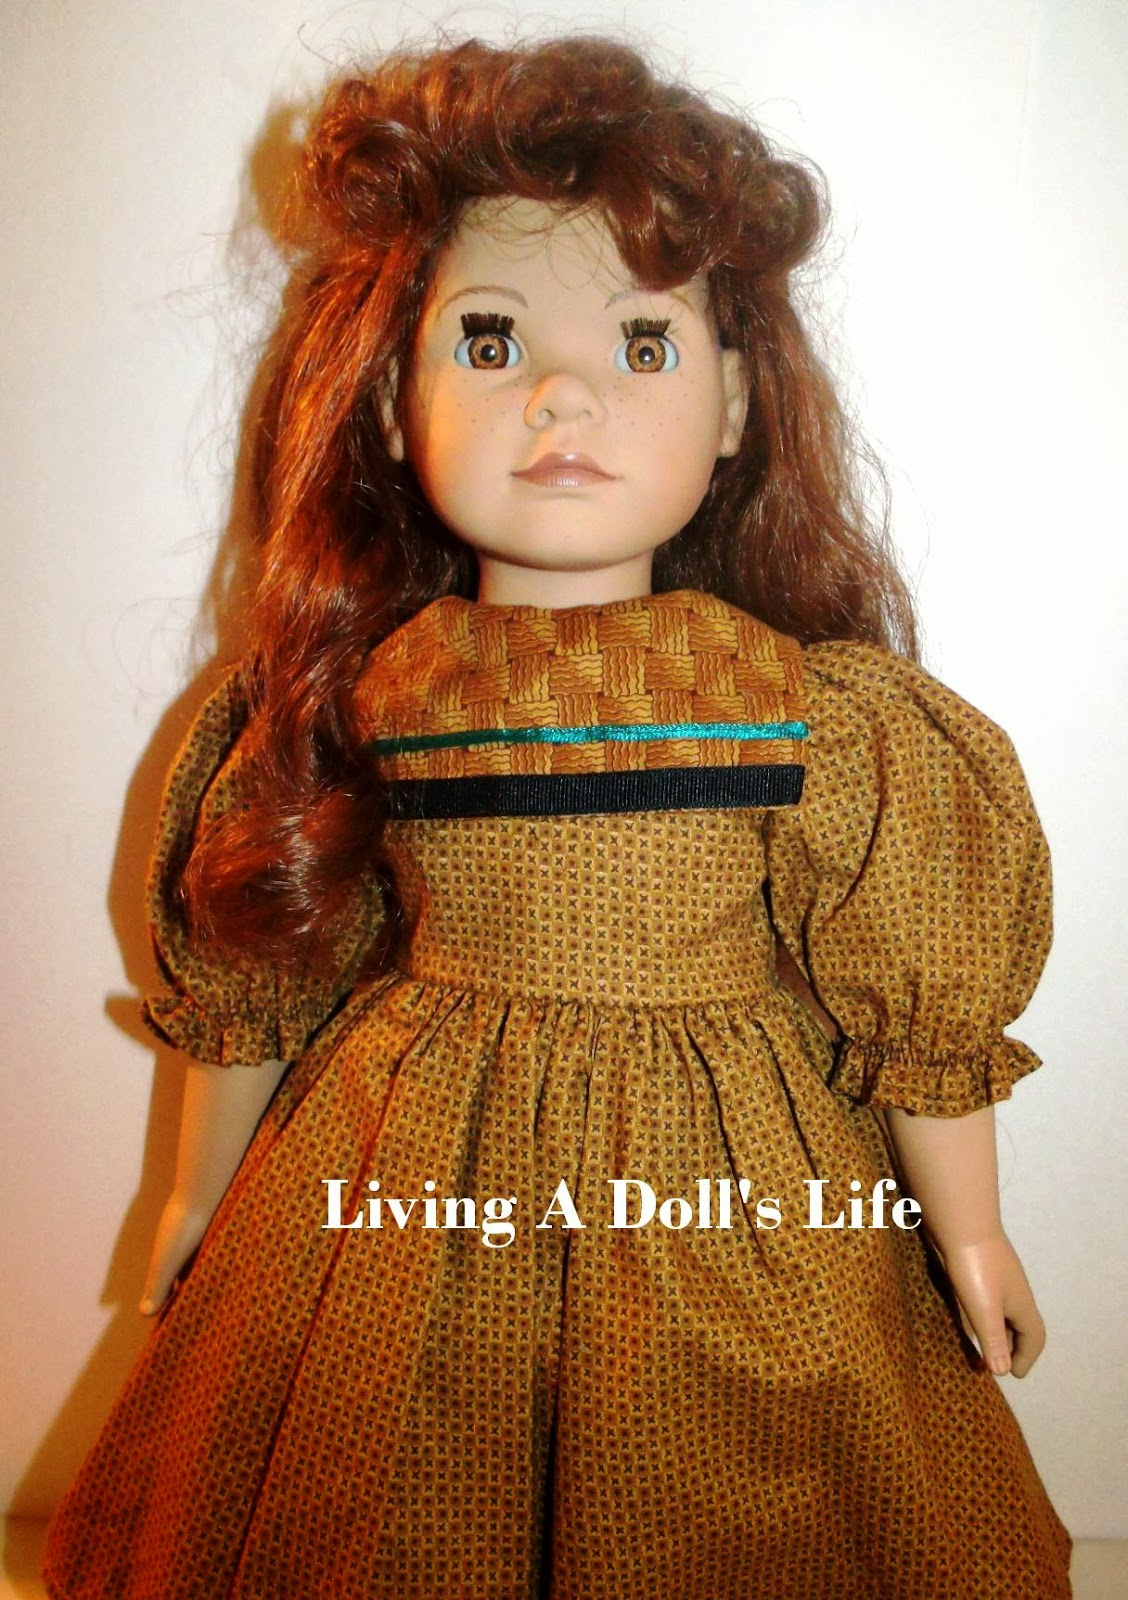 Living A Doll's Life : Heidi Ott Faithful Friends Dolls